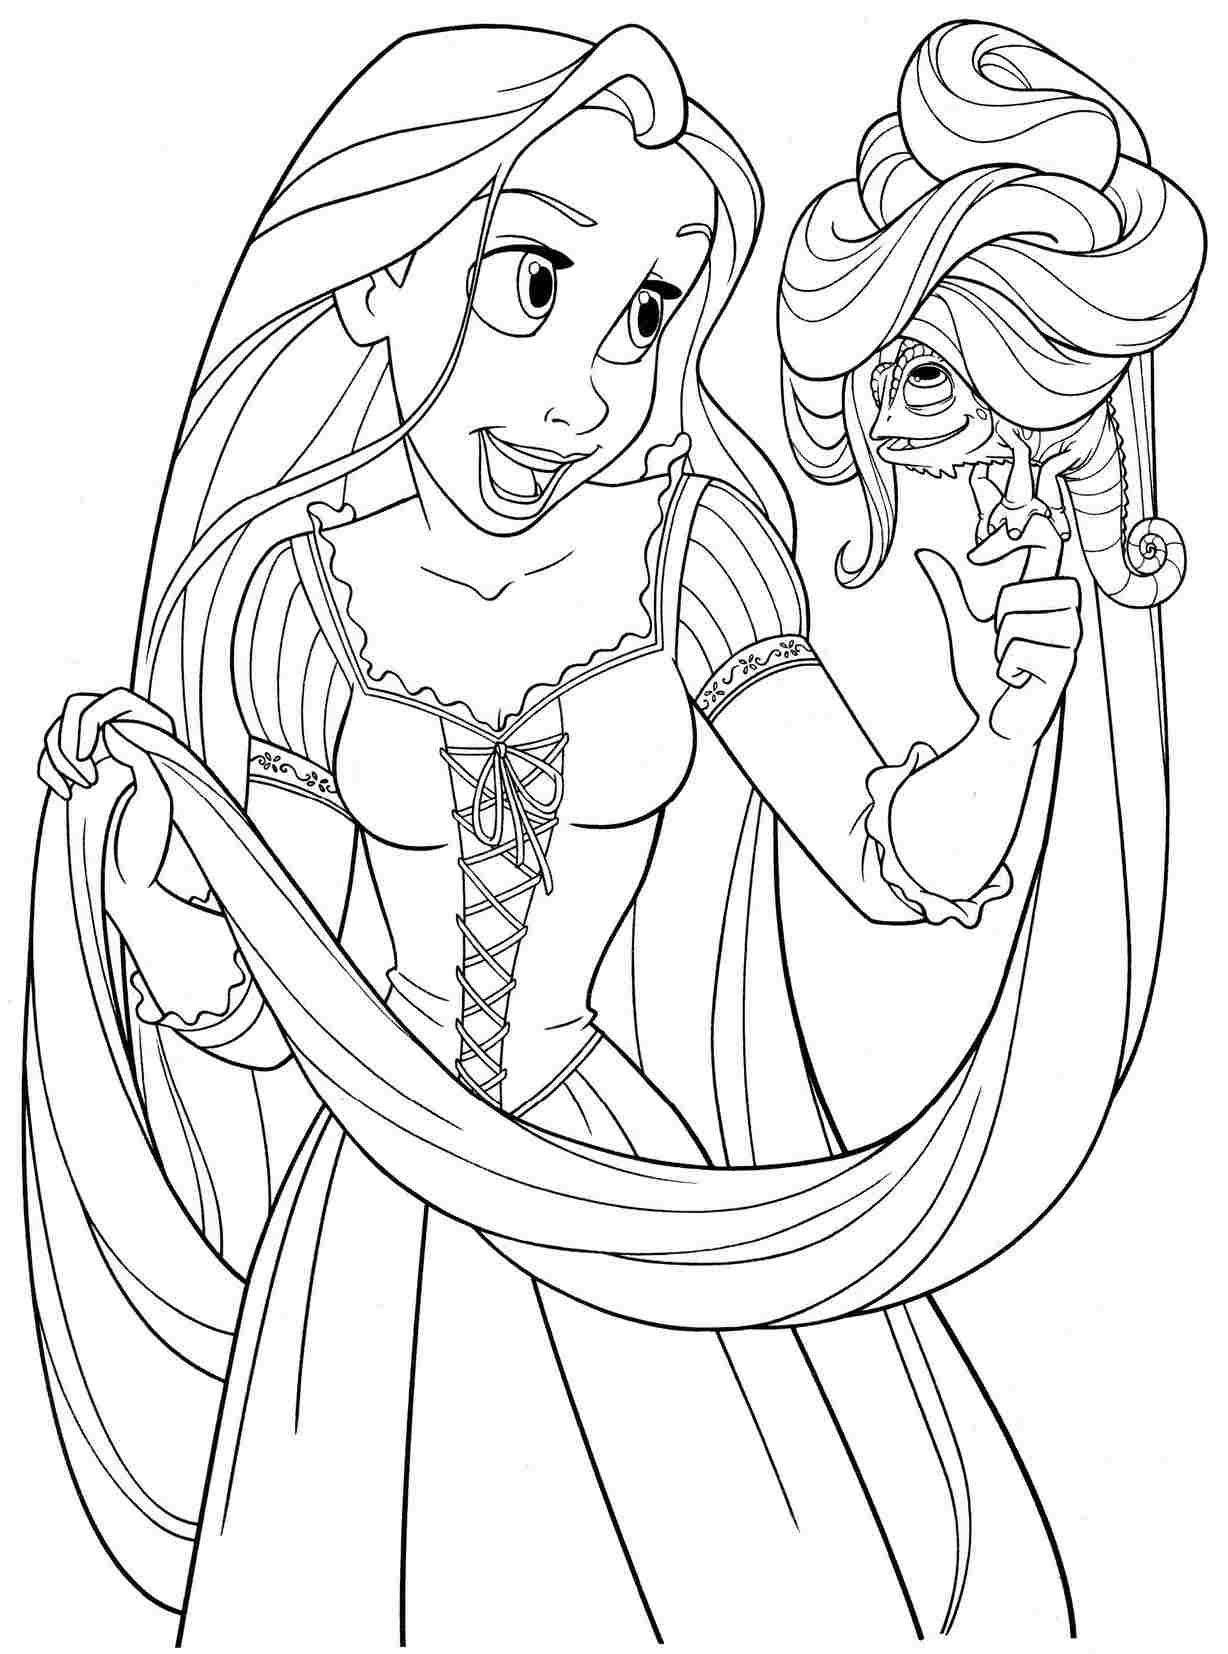 Disney Princess Coloring Pages For Kids at GetDrawings ...